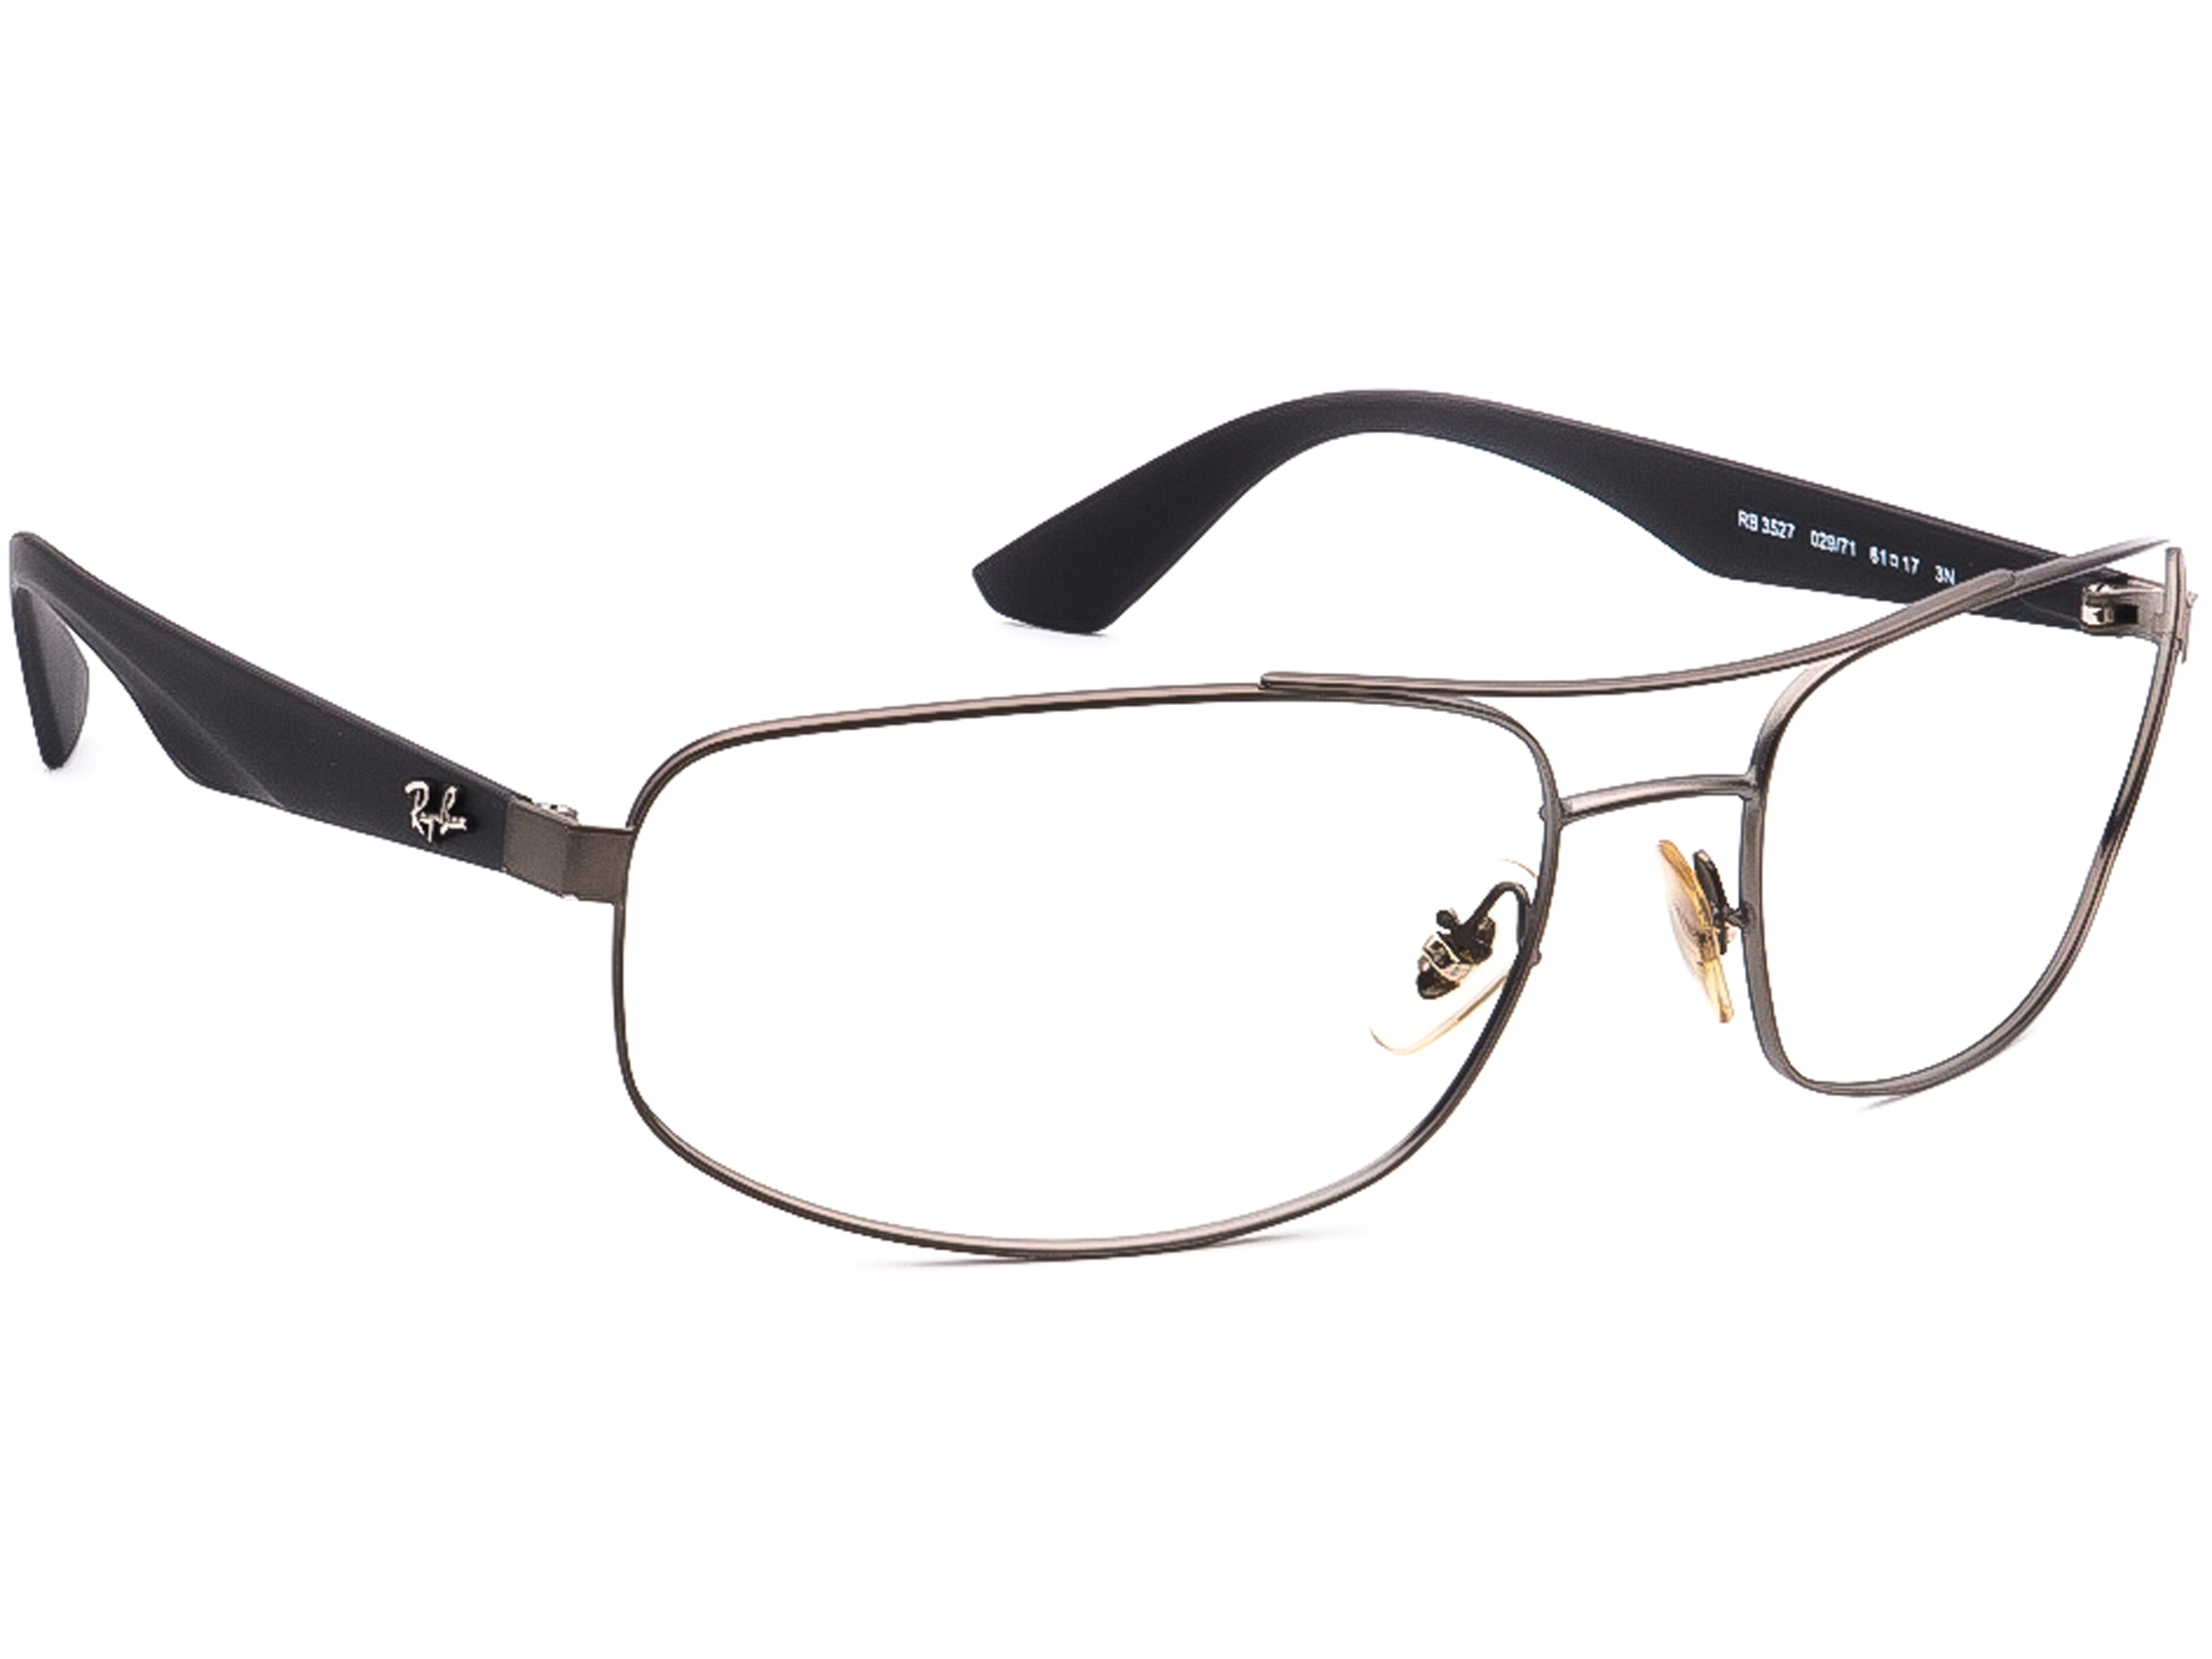 Ray Ban RB 3527 029/71 Sunglasses Frame Only